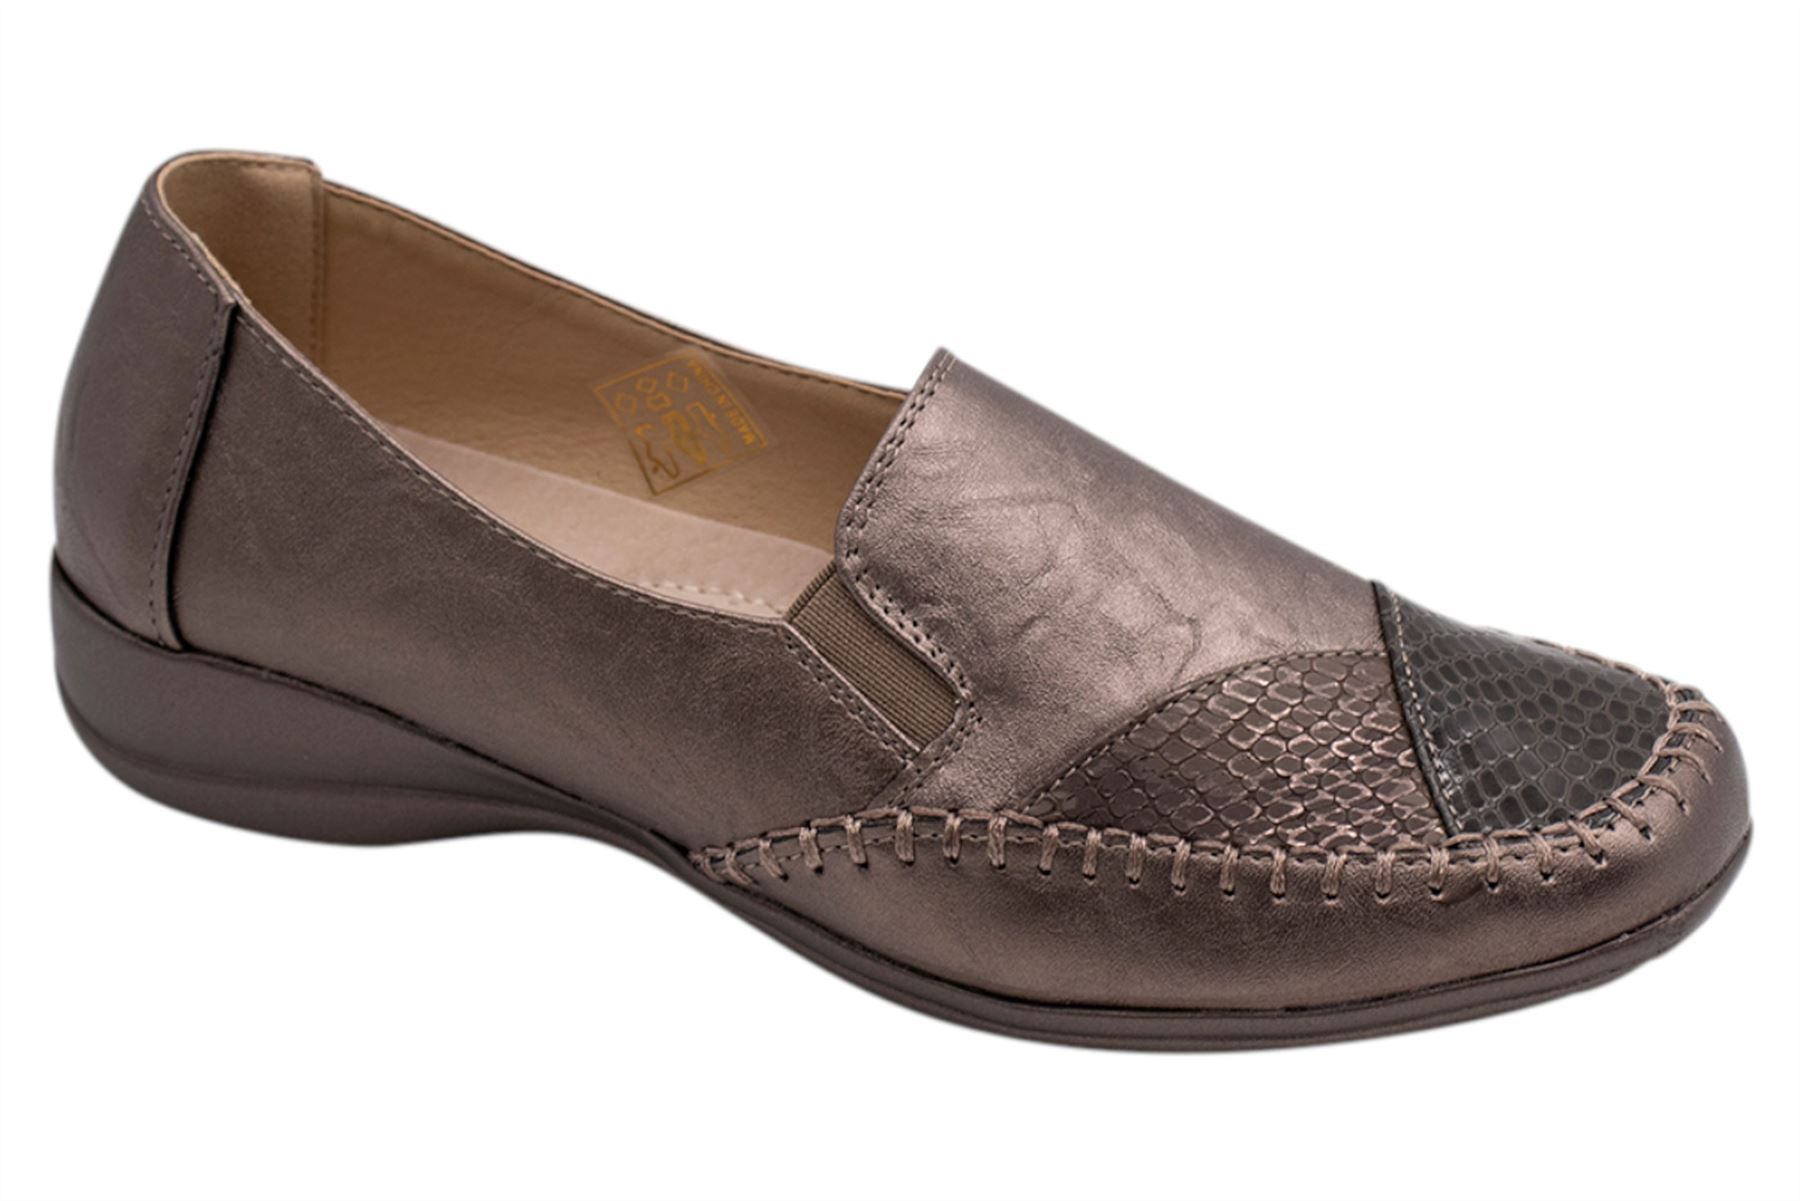 Womens-Flat-Shoes-Ladies-Pumps-Office-Work-Casual-Slip-On-Loafer-Size thumbnail 29